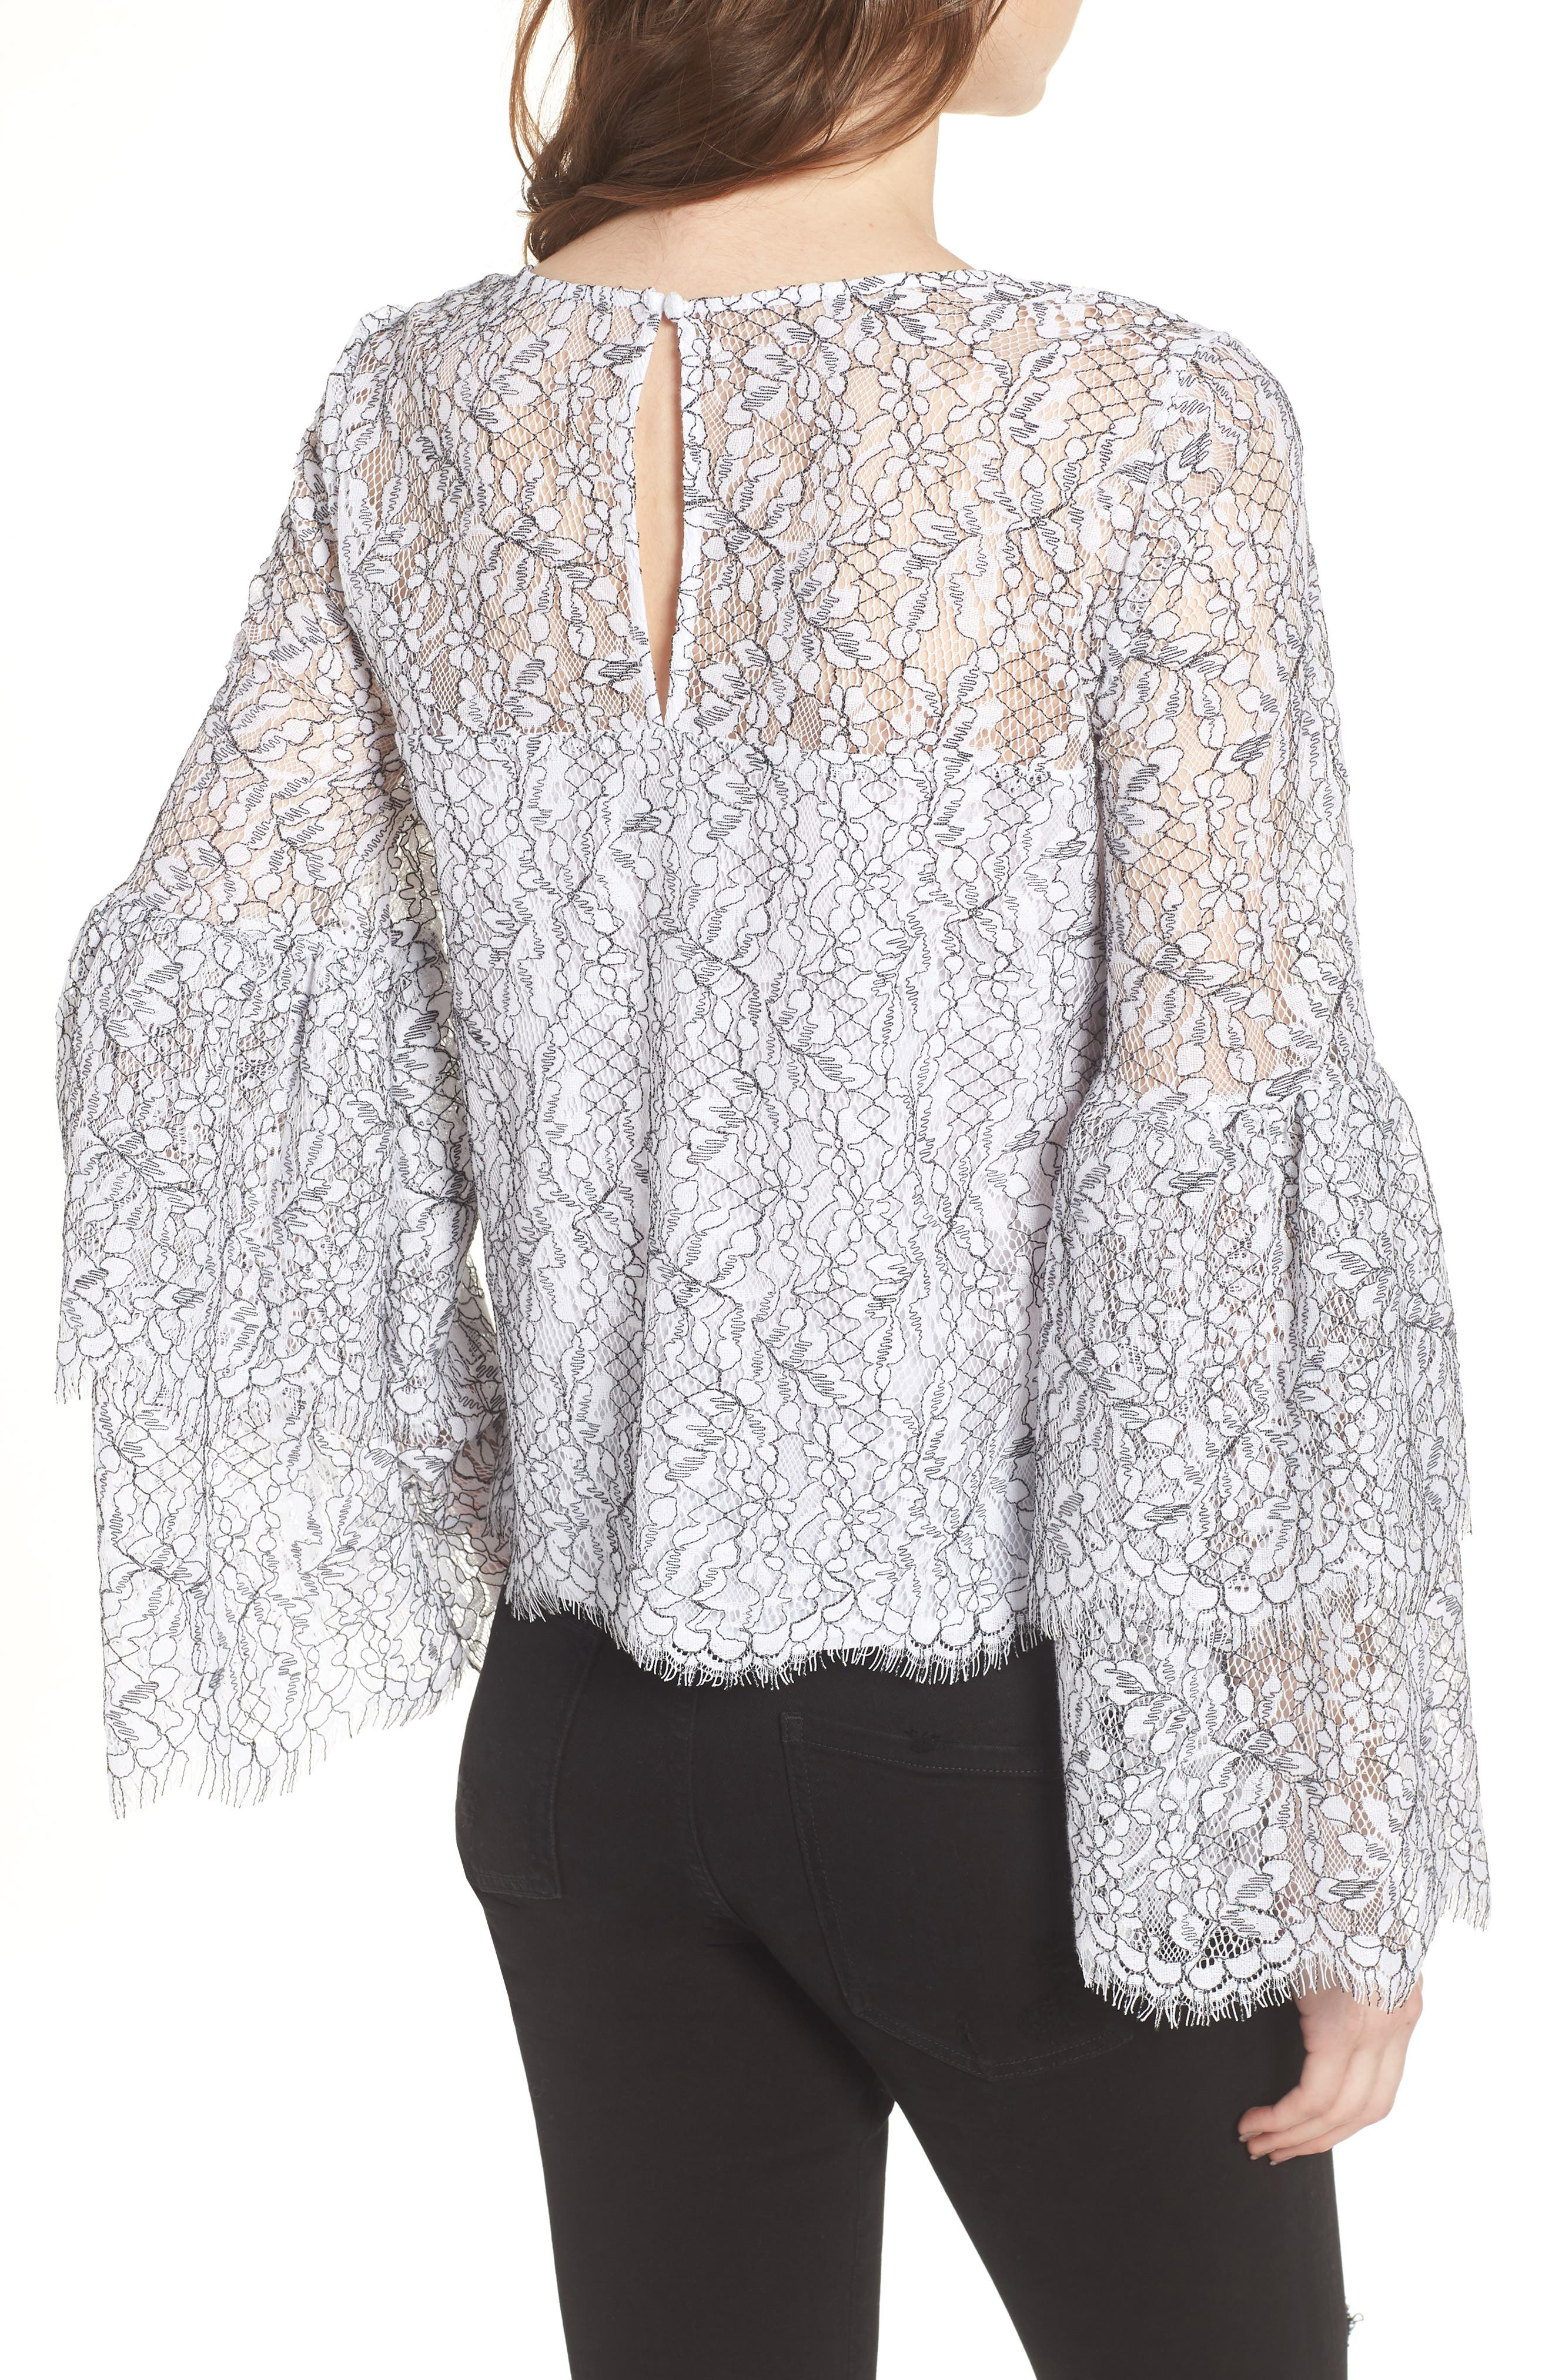 Basswood Lace Top,                             Alternate thumbnail 2, color,